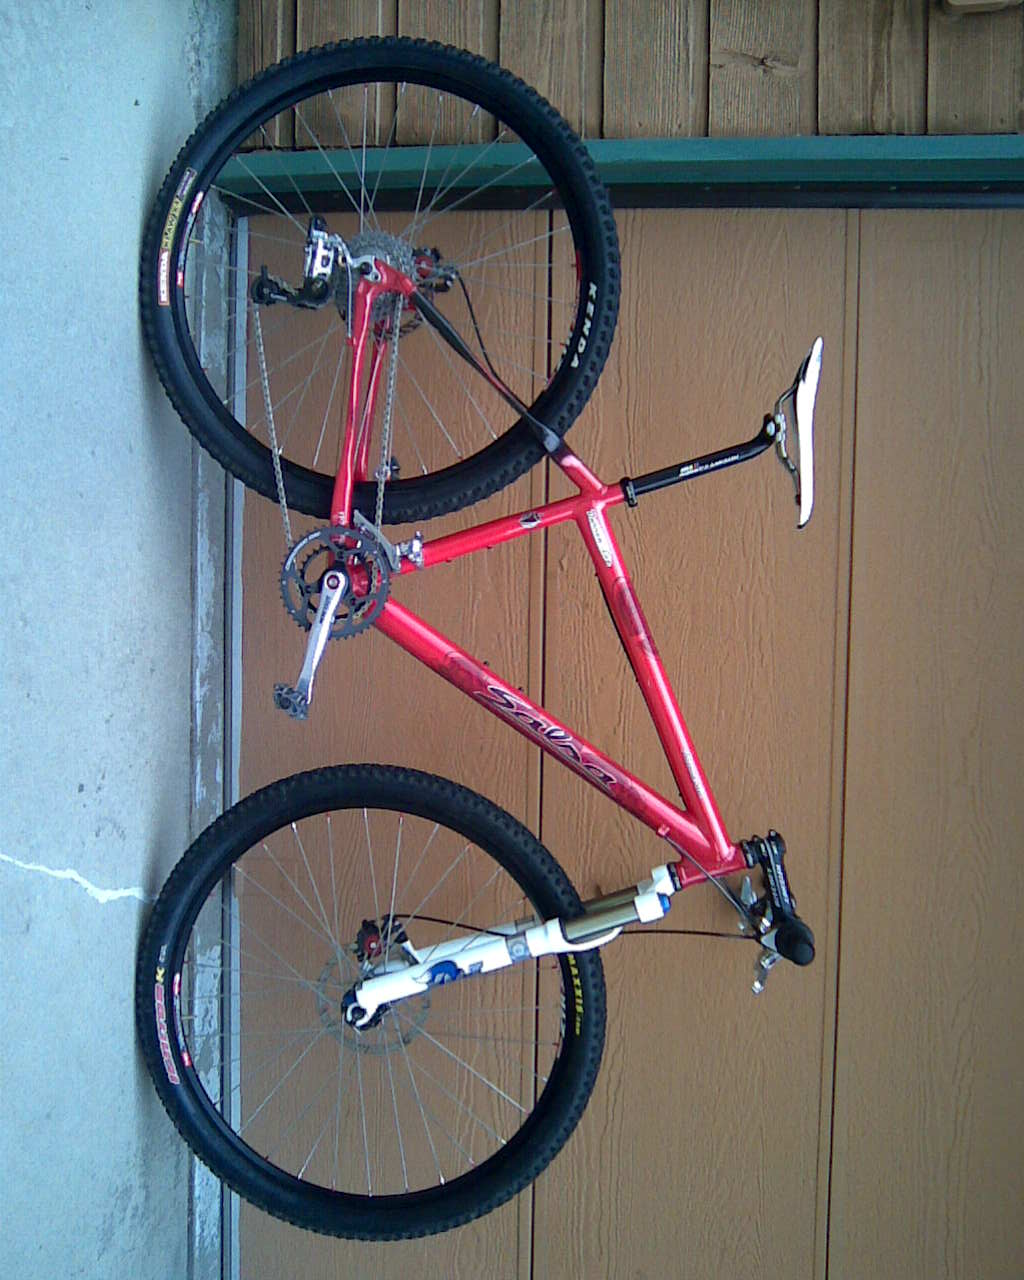 Post Pictures of your 29er-salsa-pic.jpg